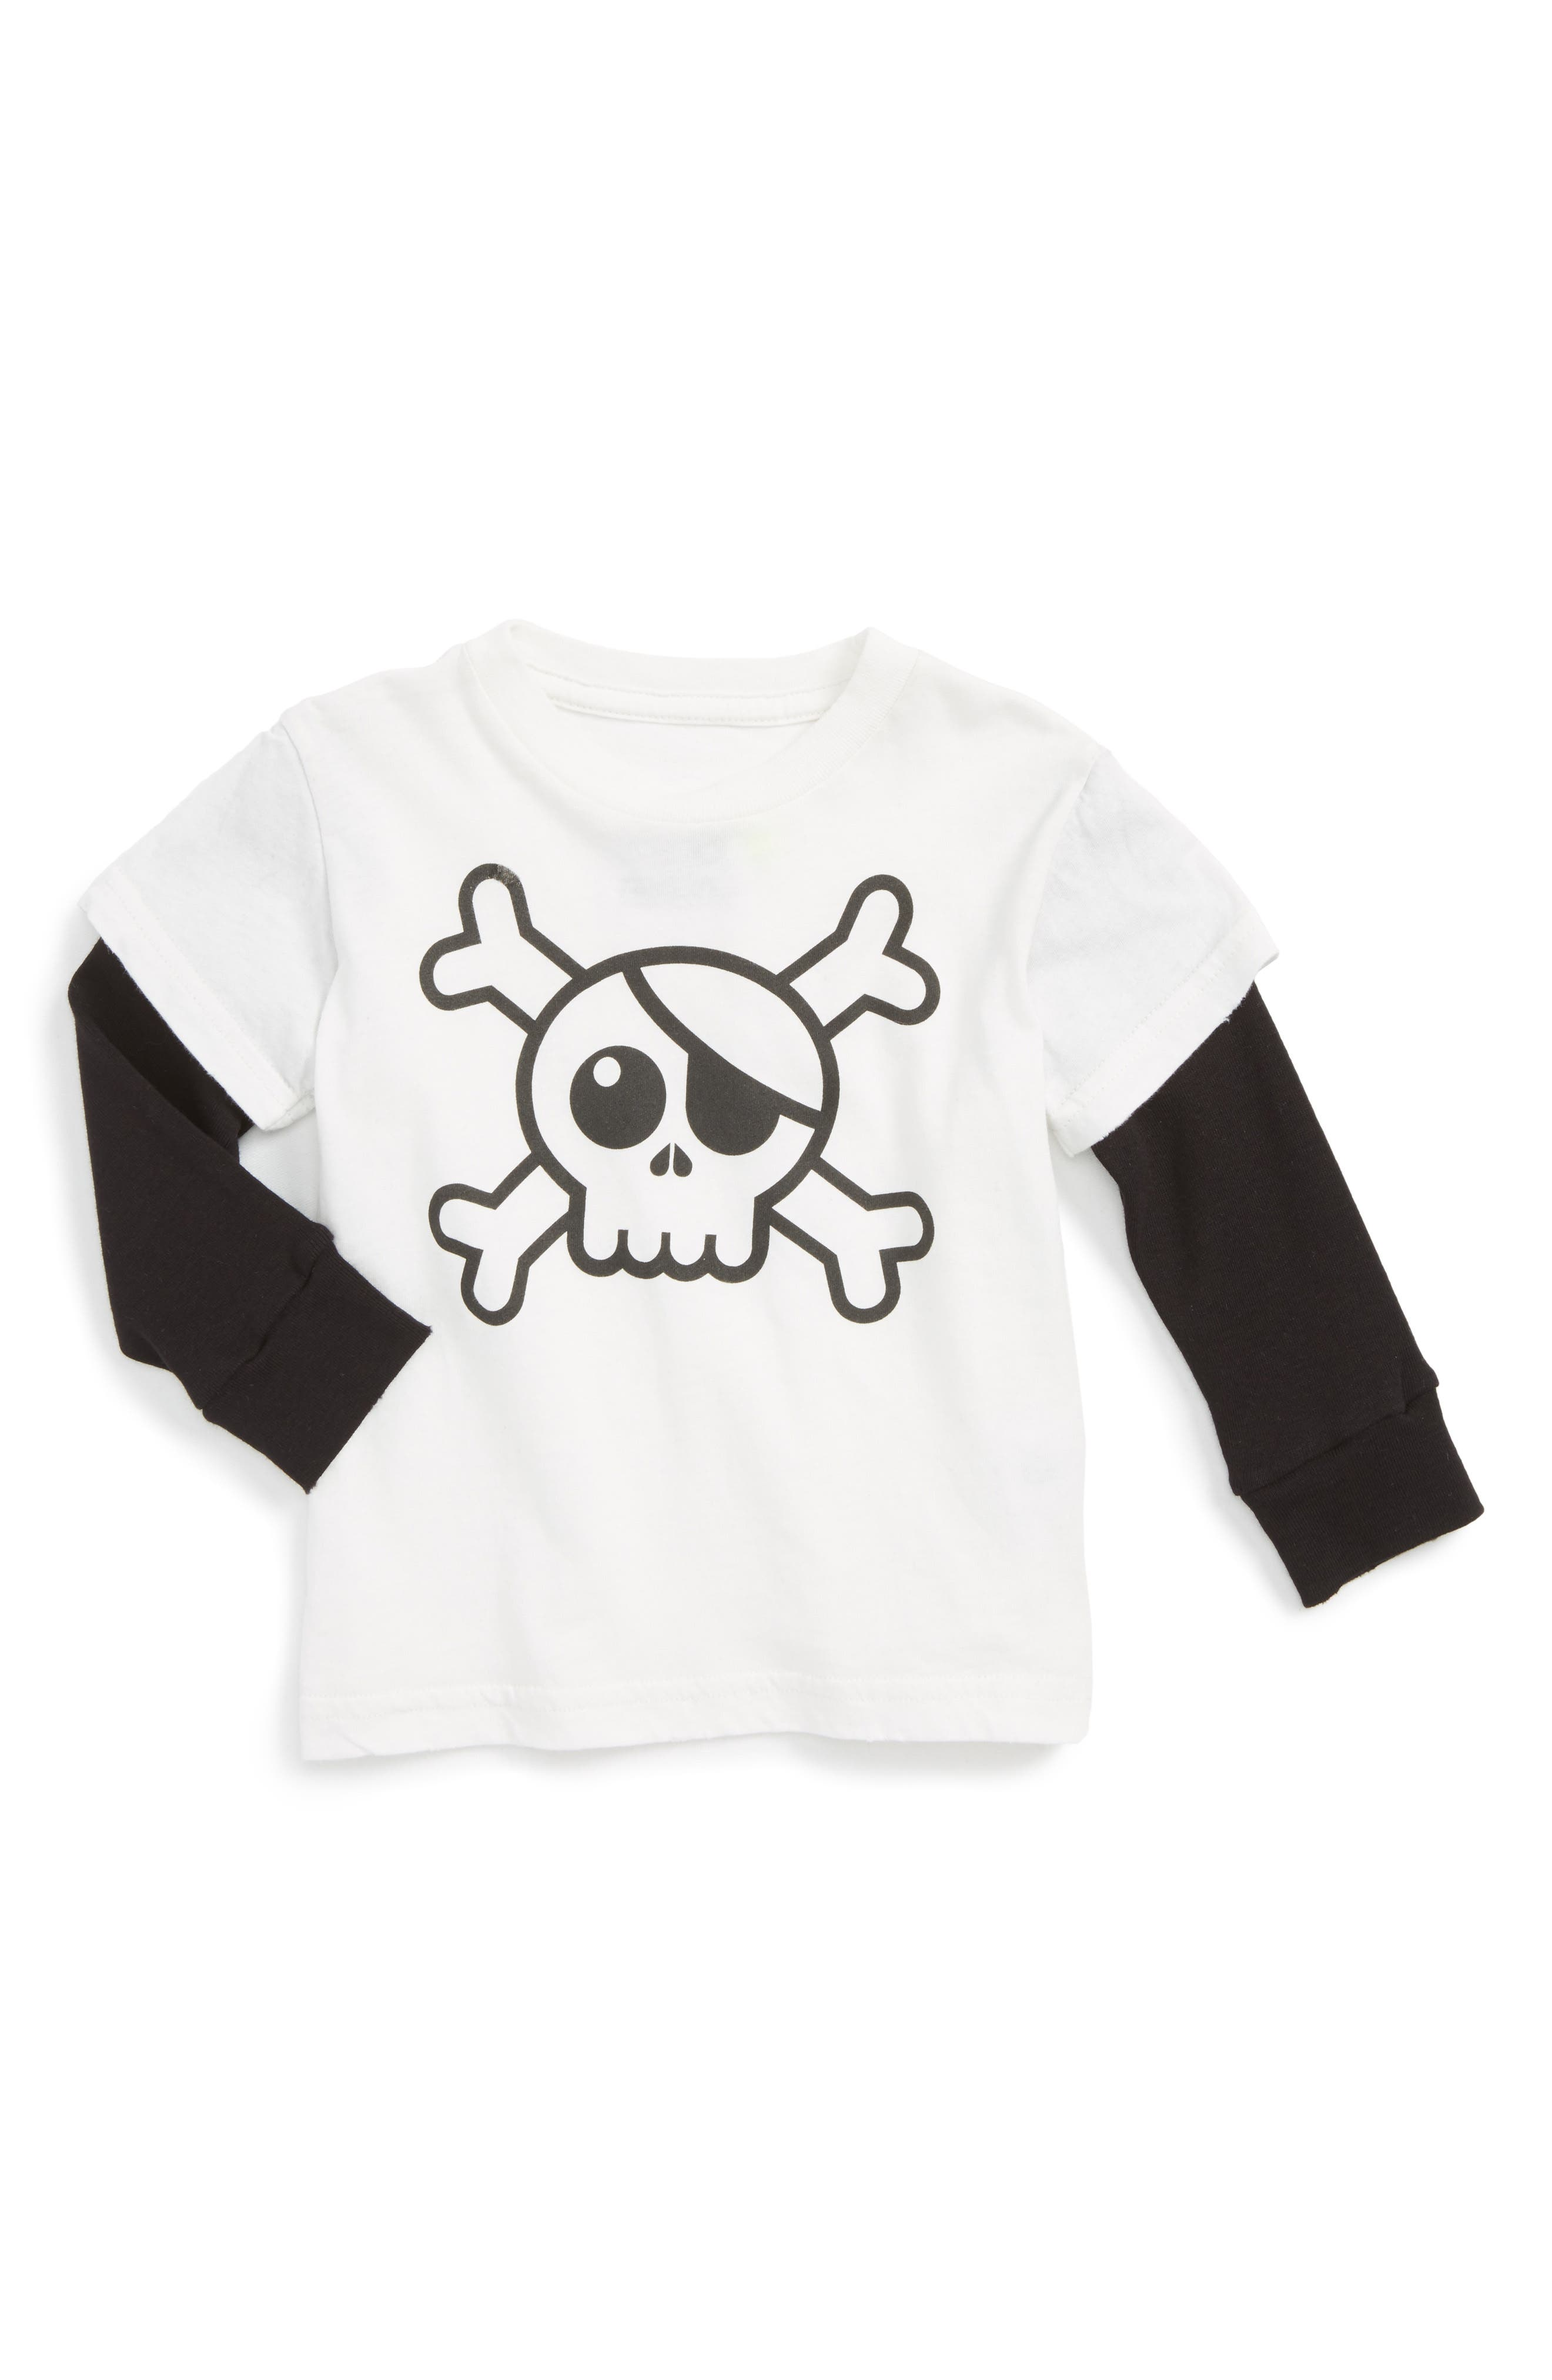 NUNUNU Skull Graphic T-Shirt (Baby)